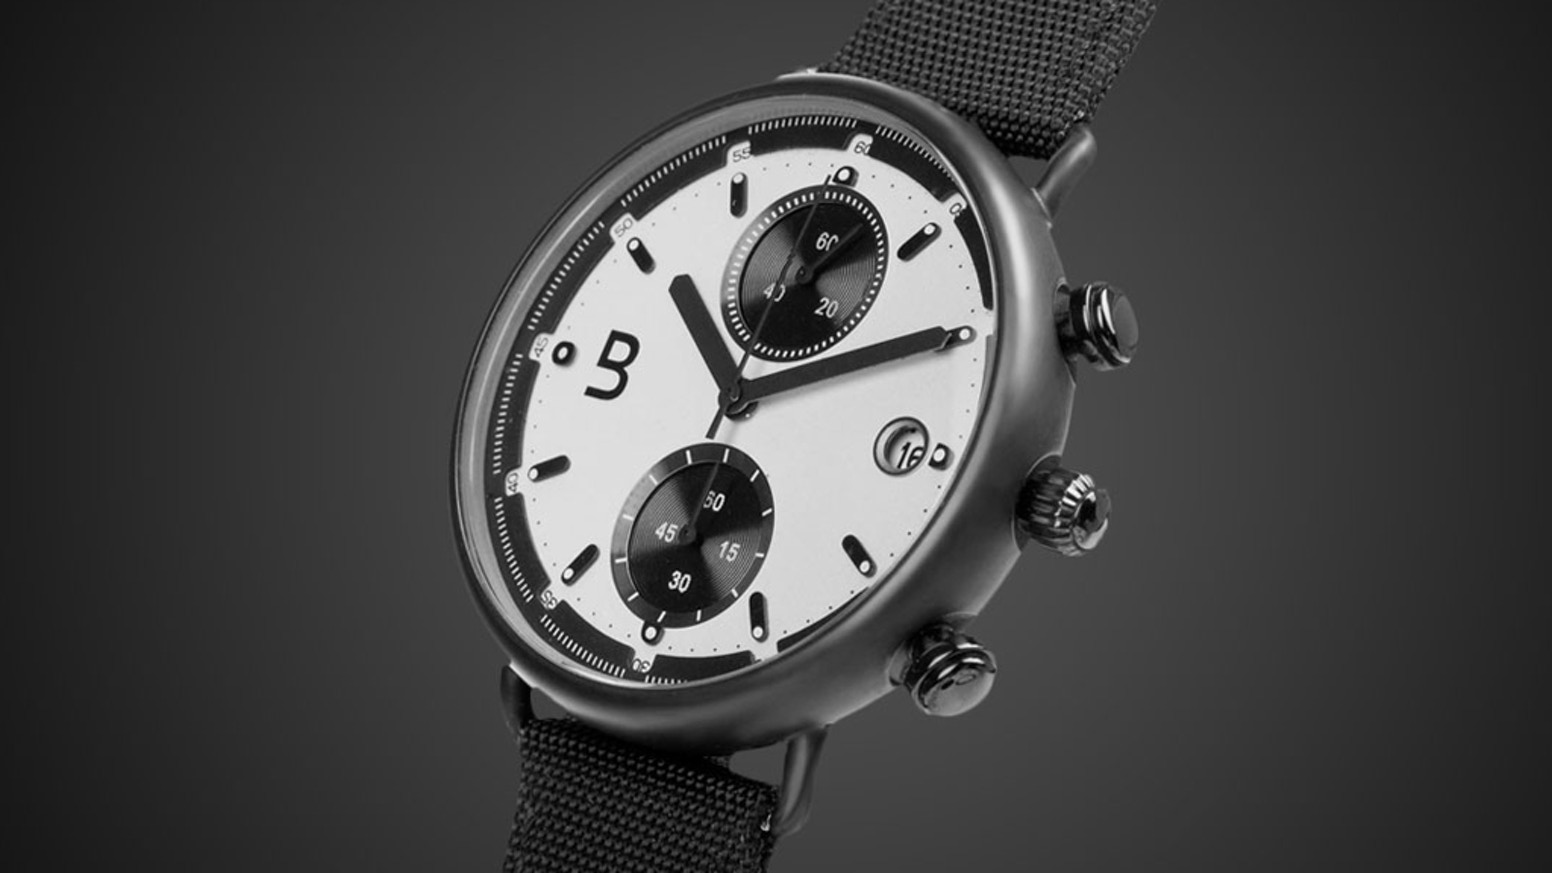 Missed the campaign? Don't worry! All Edmonton watches are already available on our website.